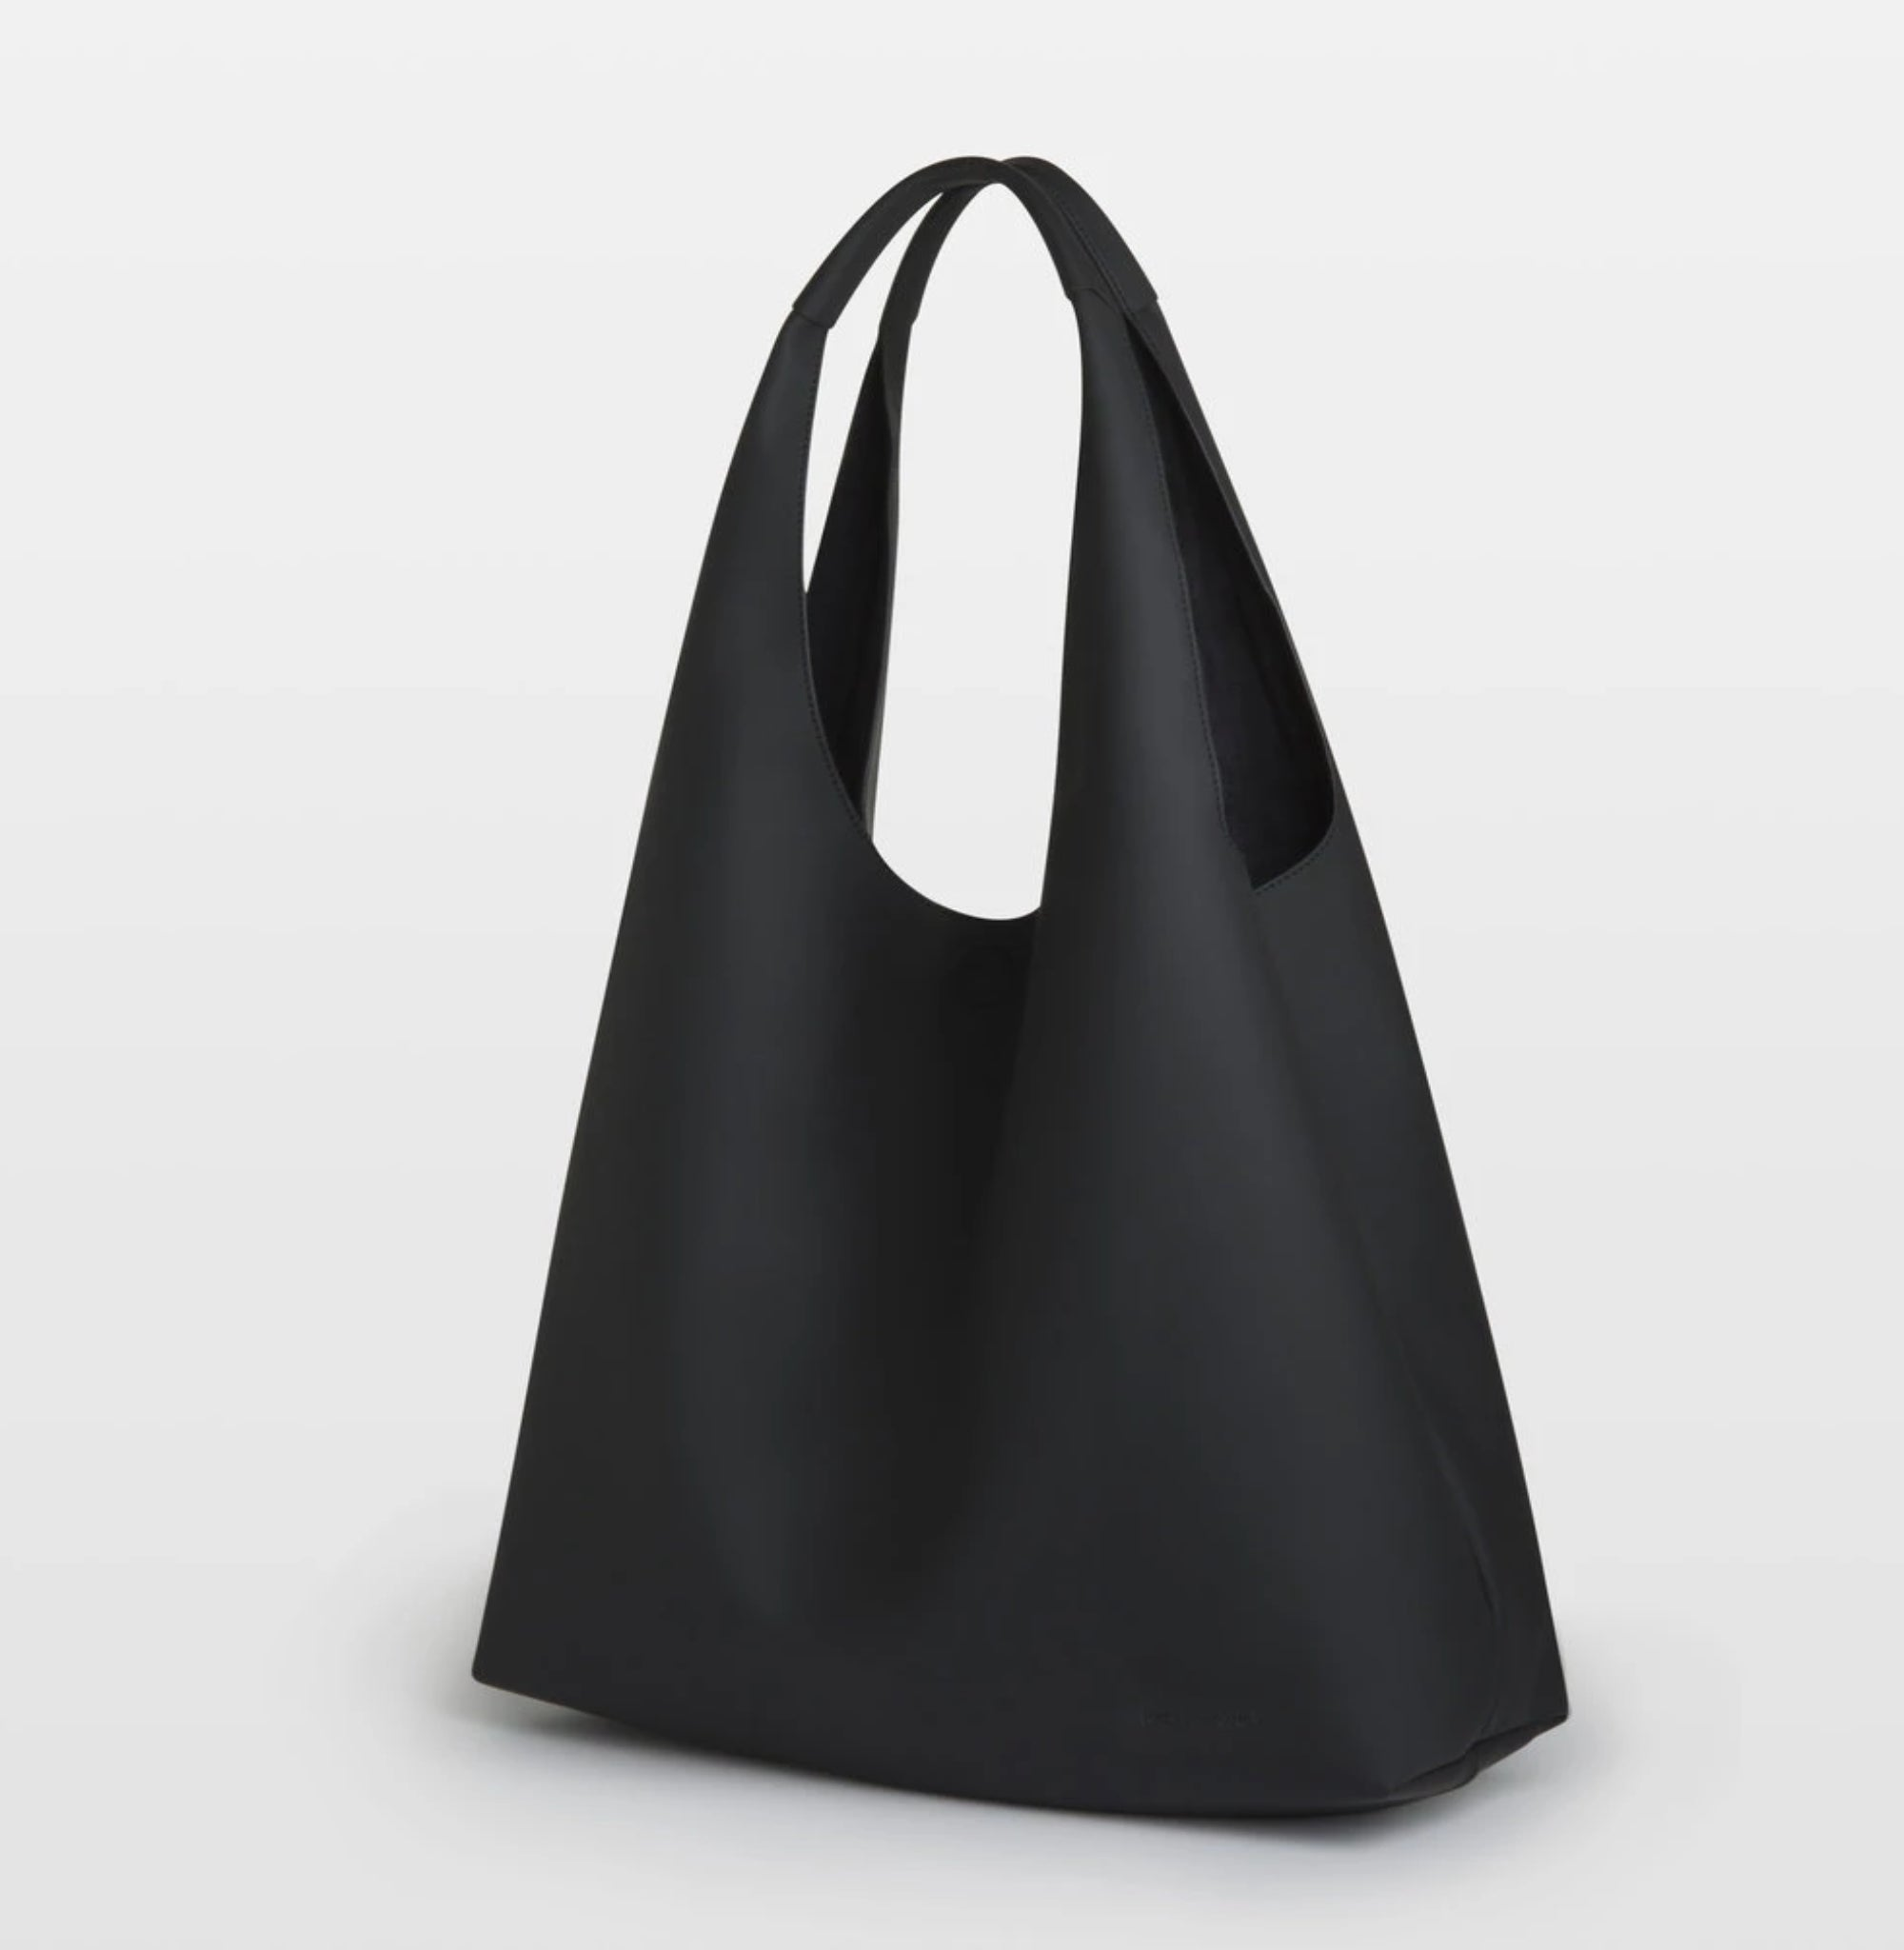 AVA Shopping Tote Bag- Black